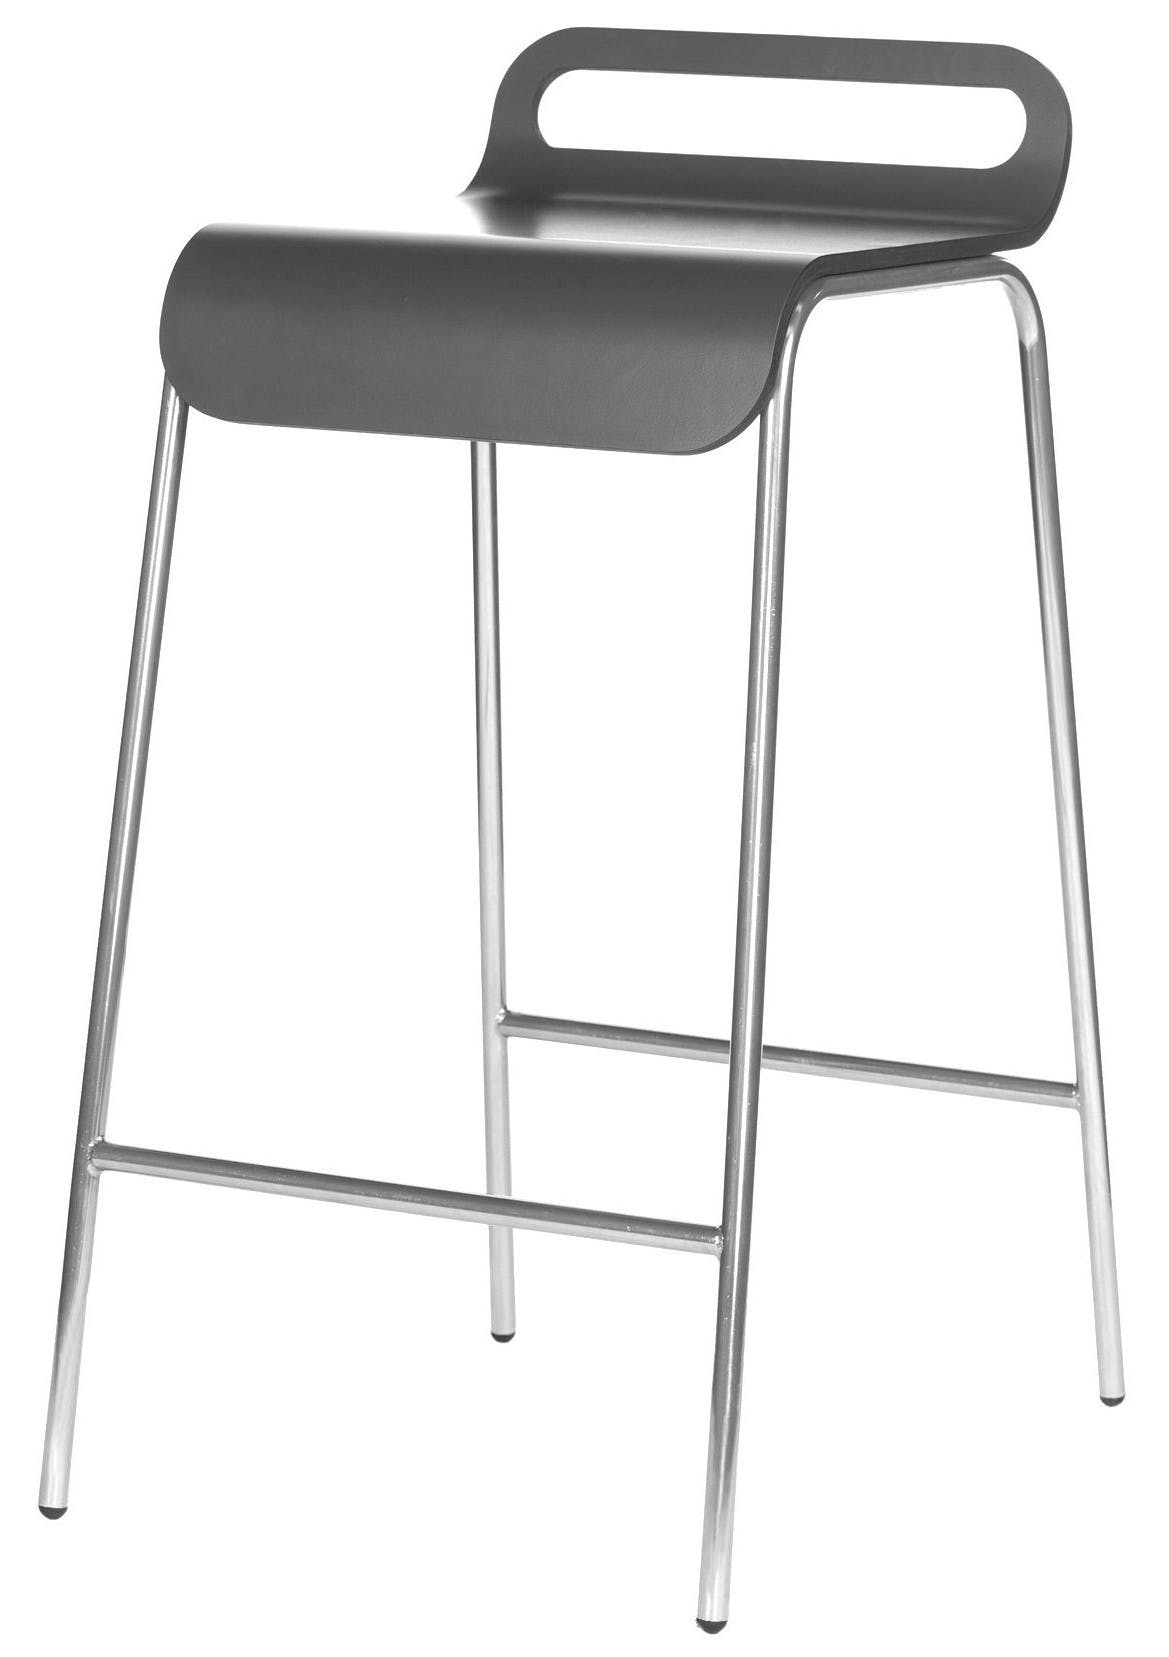 Deadgood-form-stool-front-haute-living_190225_232948_1